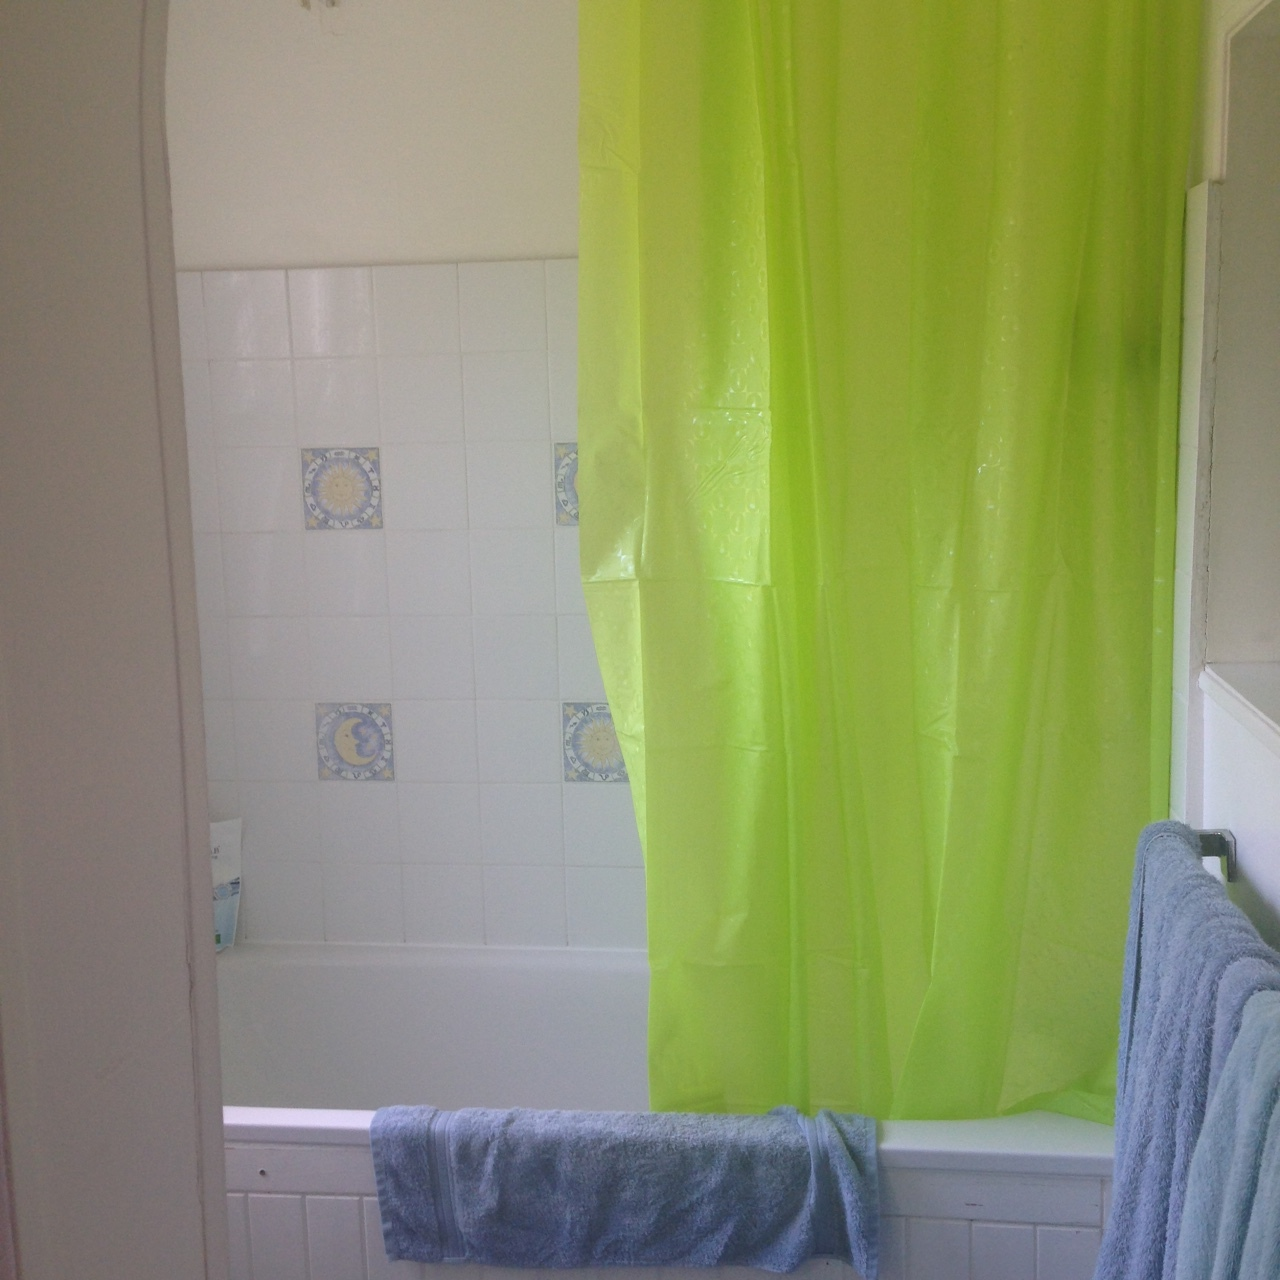 ^  A new bright and happy shower curtain installed after I flooded the bathroom!